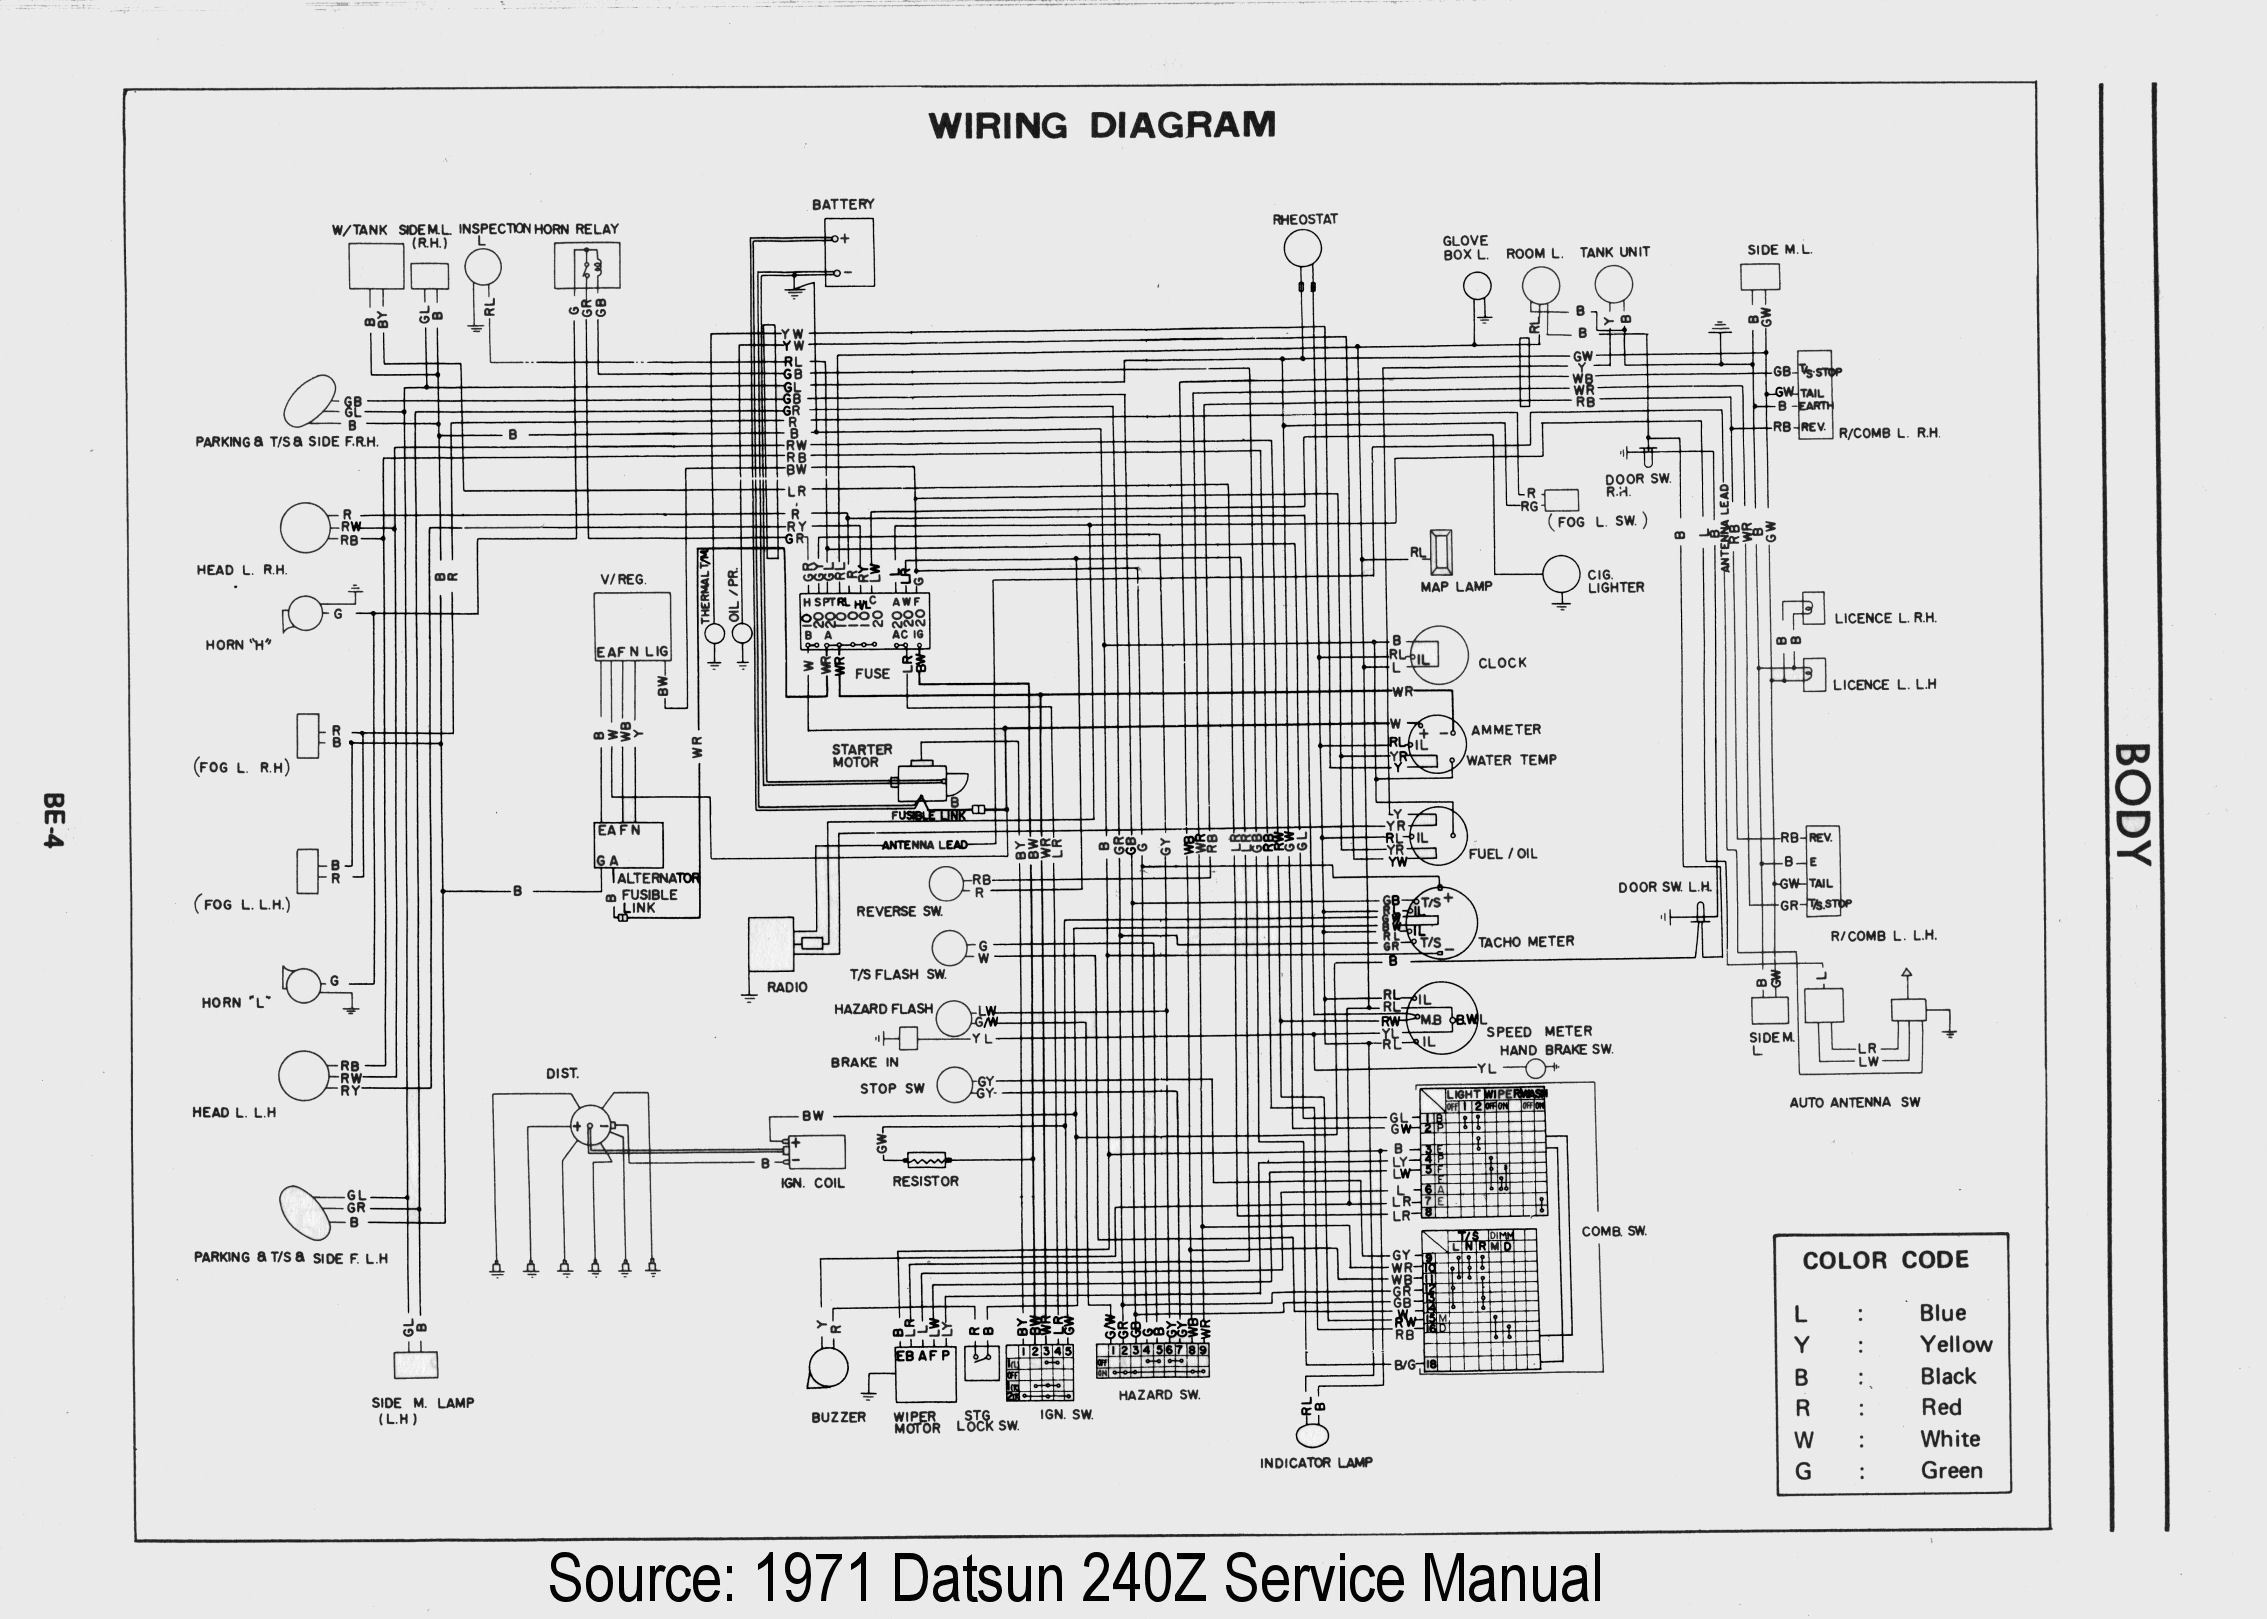 nissan 280zx heater wiring diagram generic wiring troubleshooting checklist woodworkerb best of 1977  generic wiring troubleshooting